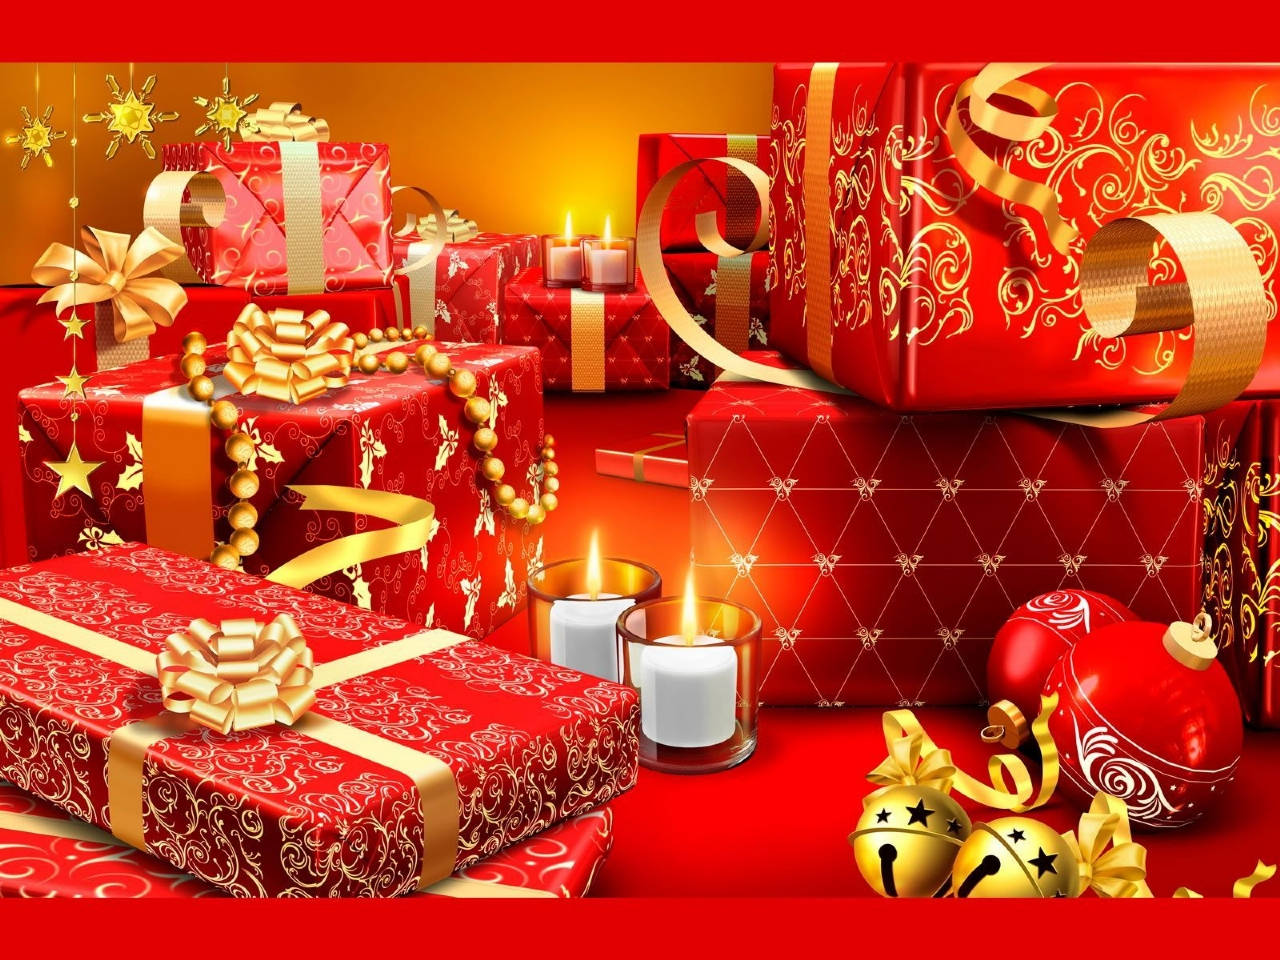 Digital art Christmas Decoration desktop wallpaper nr 1280x960